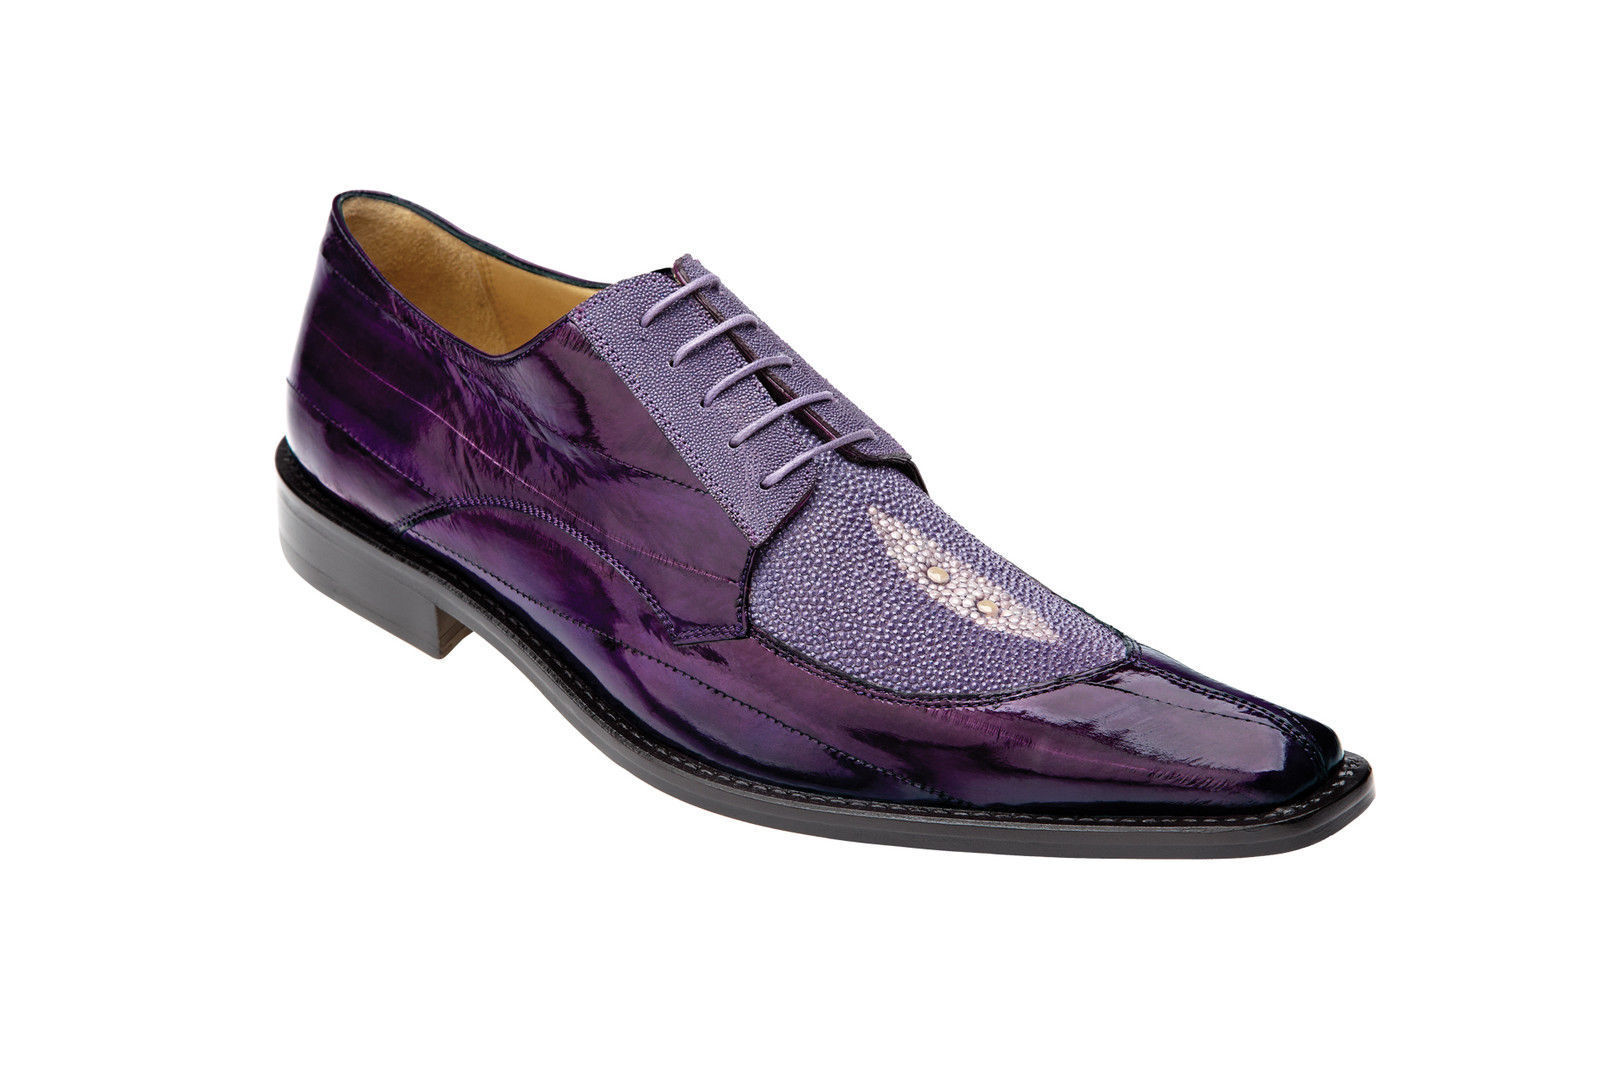 22 Exotic Mens Shoes To Die For Reviews By Suit